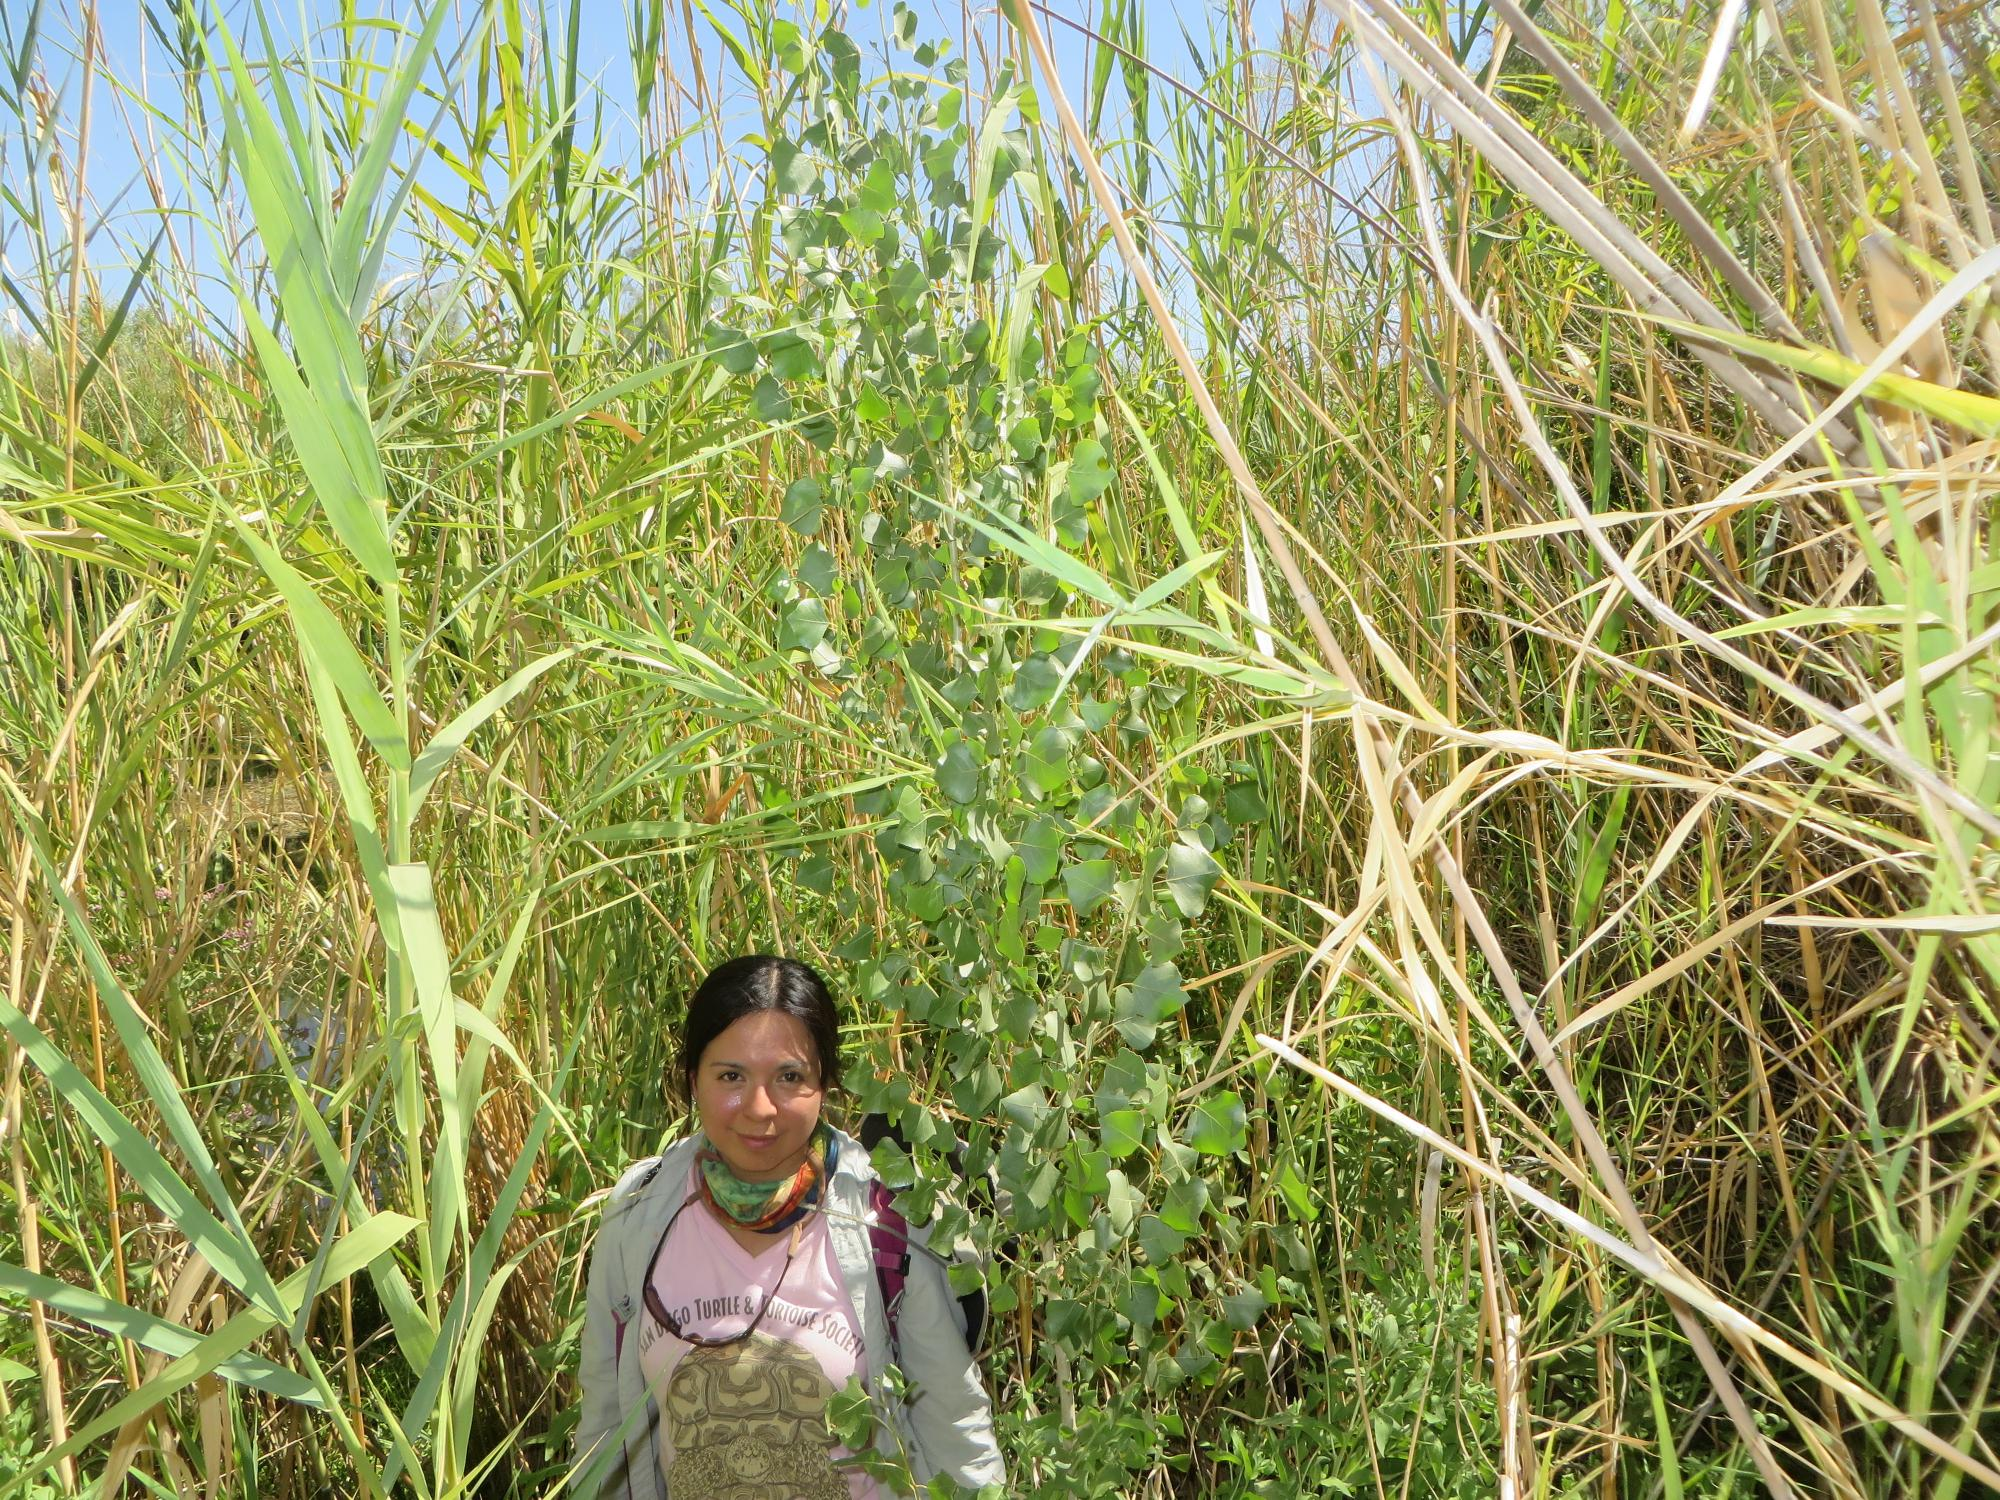 Martha Gómez Sapiens, a monitoring team member and postdoctoral research associate in the UA Department of Geosciences, stands on a riverbank next to willows and cottonwoods that germinated as a result of the pulse flow.